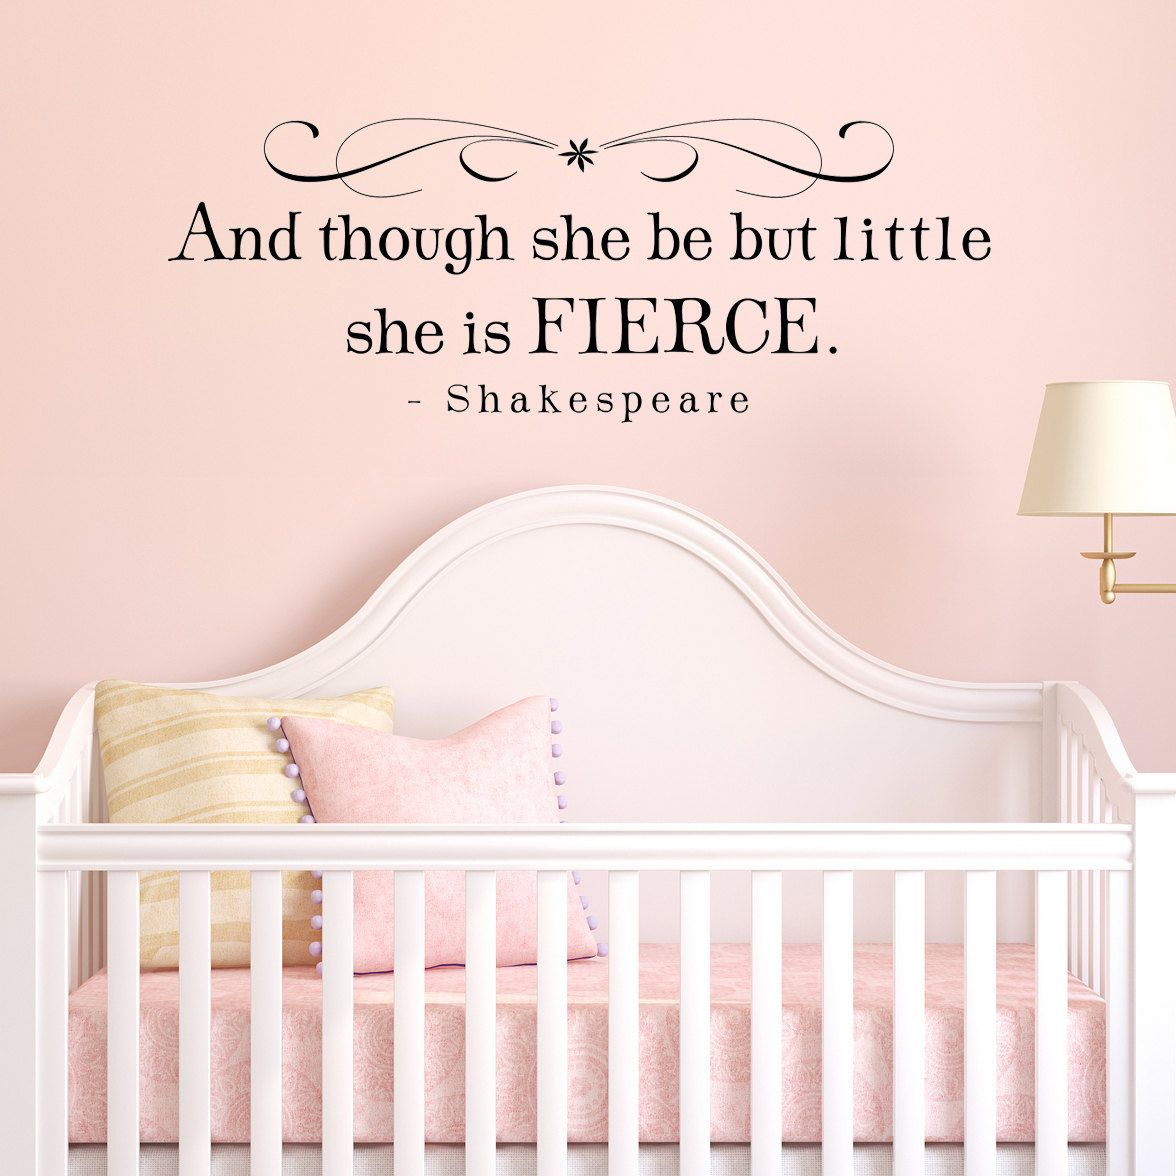 She is fierce decal and though she be but little shakespeare